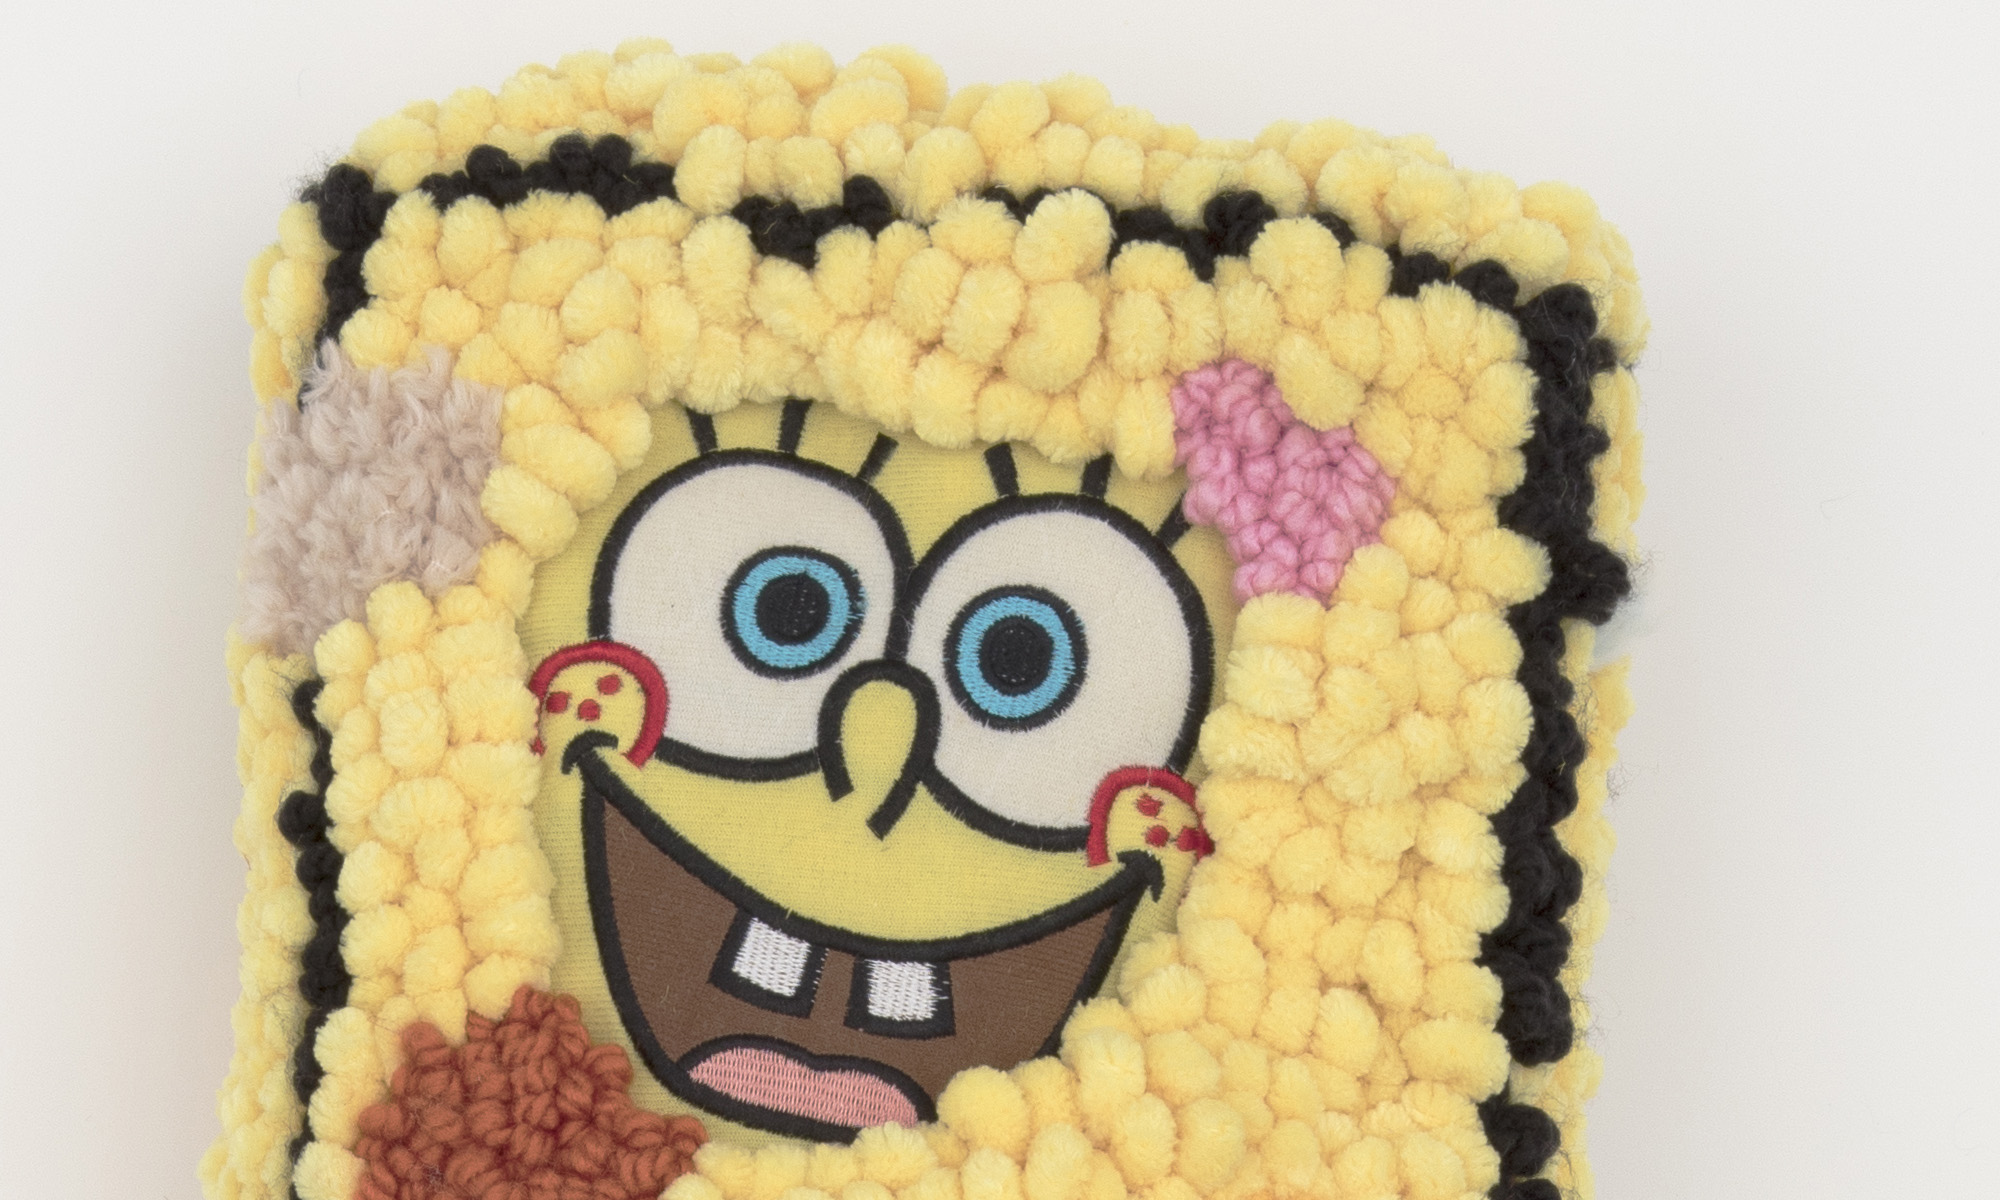 Hannah Epstein. <em>Stretch Bob Square Pants</em>, 2019. Wool, acrylic, burlap, polyfill and found Sponge Bob body parts, 47 x 14 x 4 inches (119.4 x 35.6 x 10.2 cm) Detail